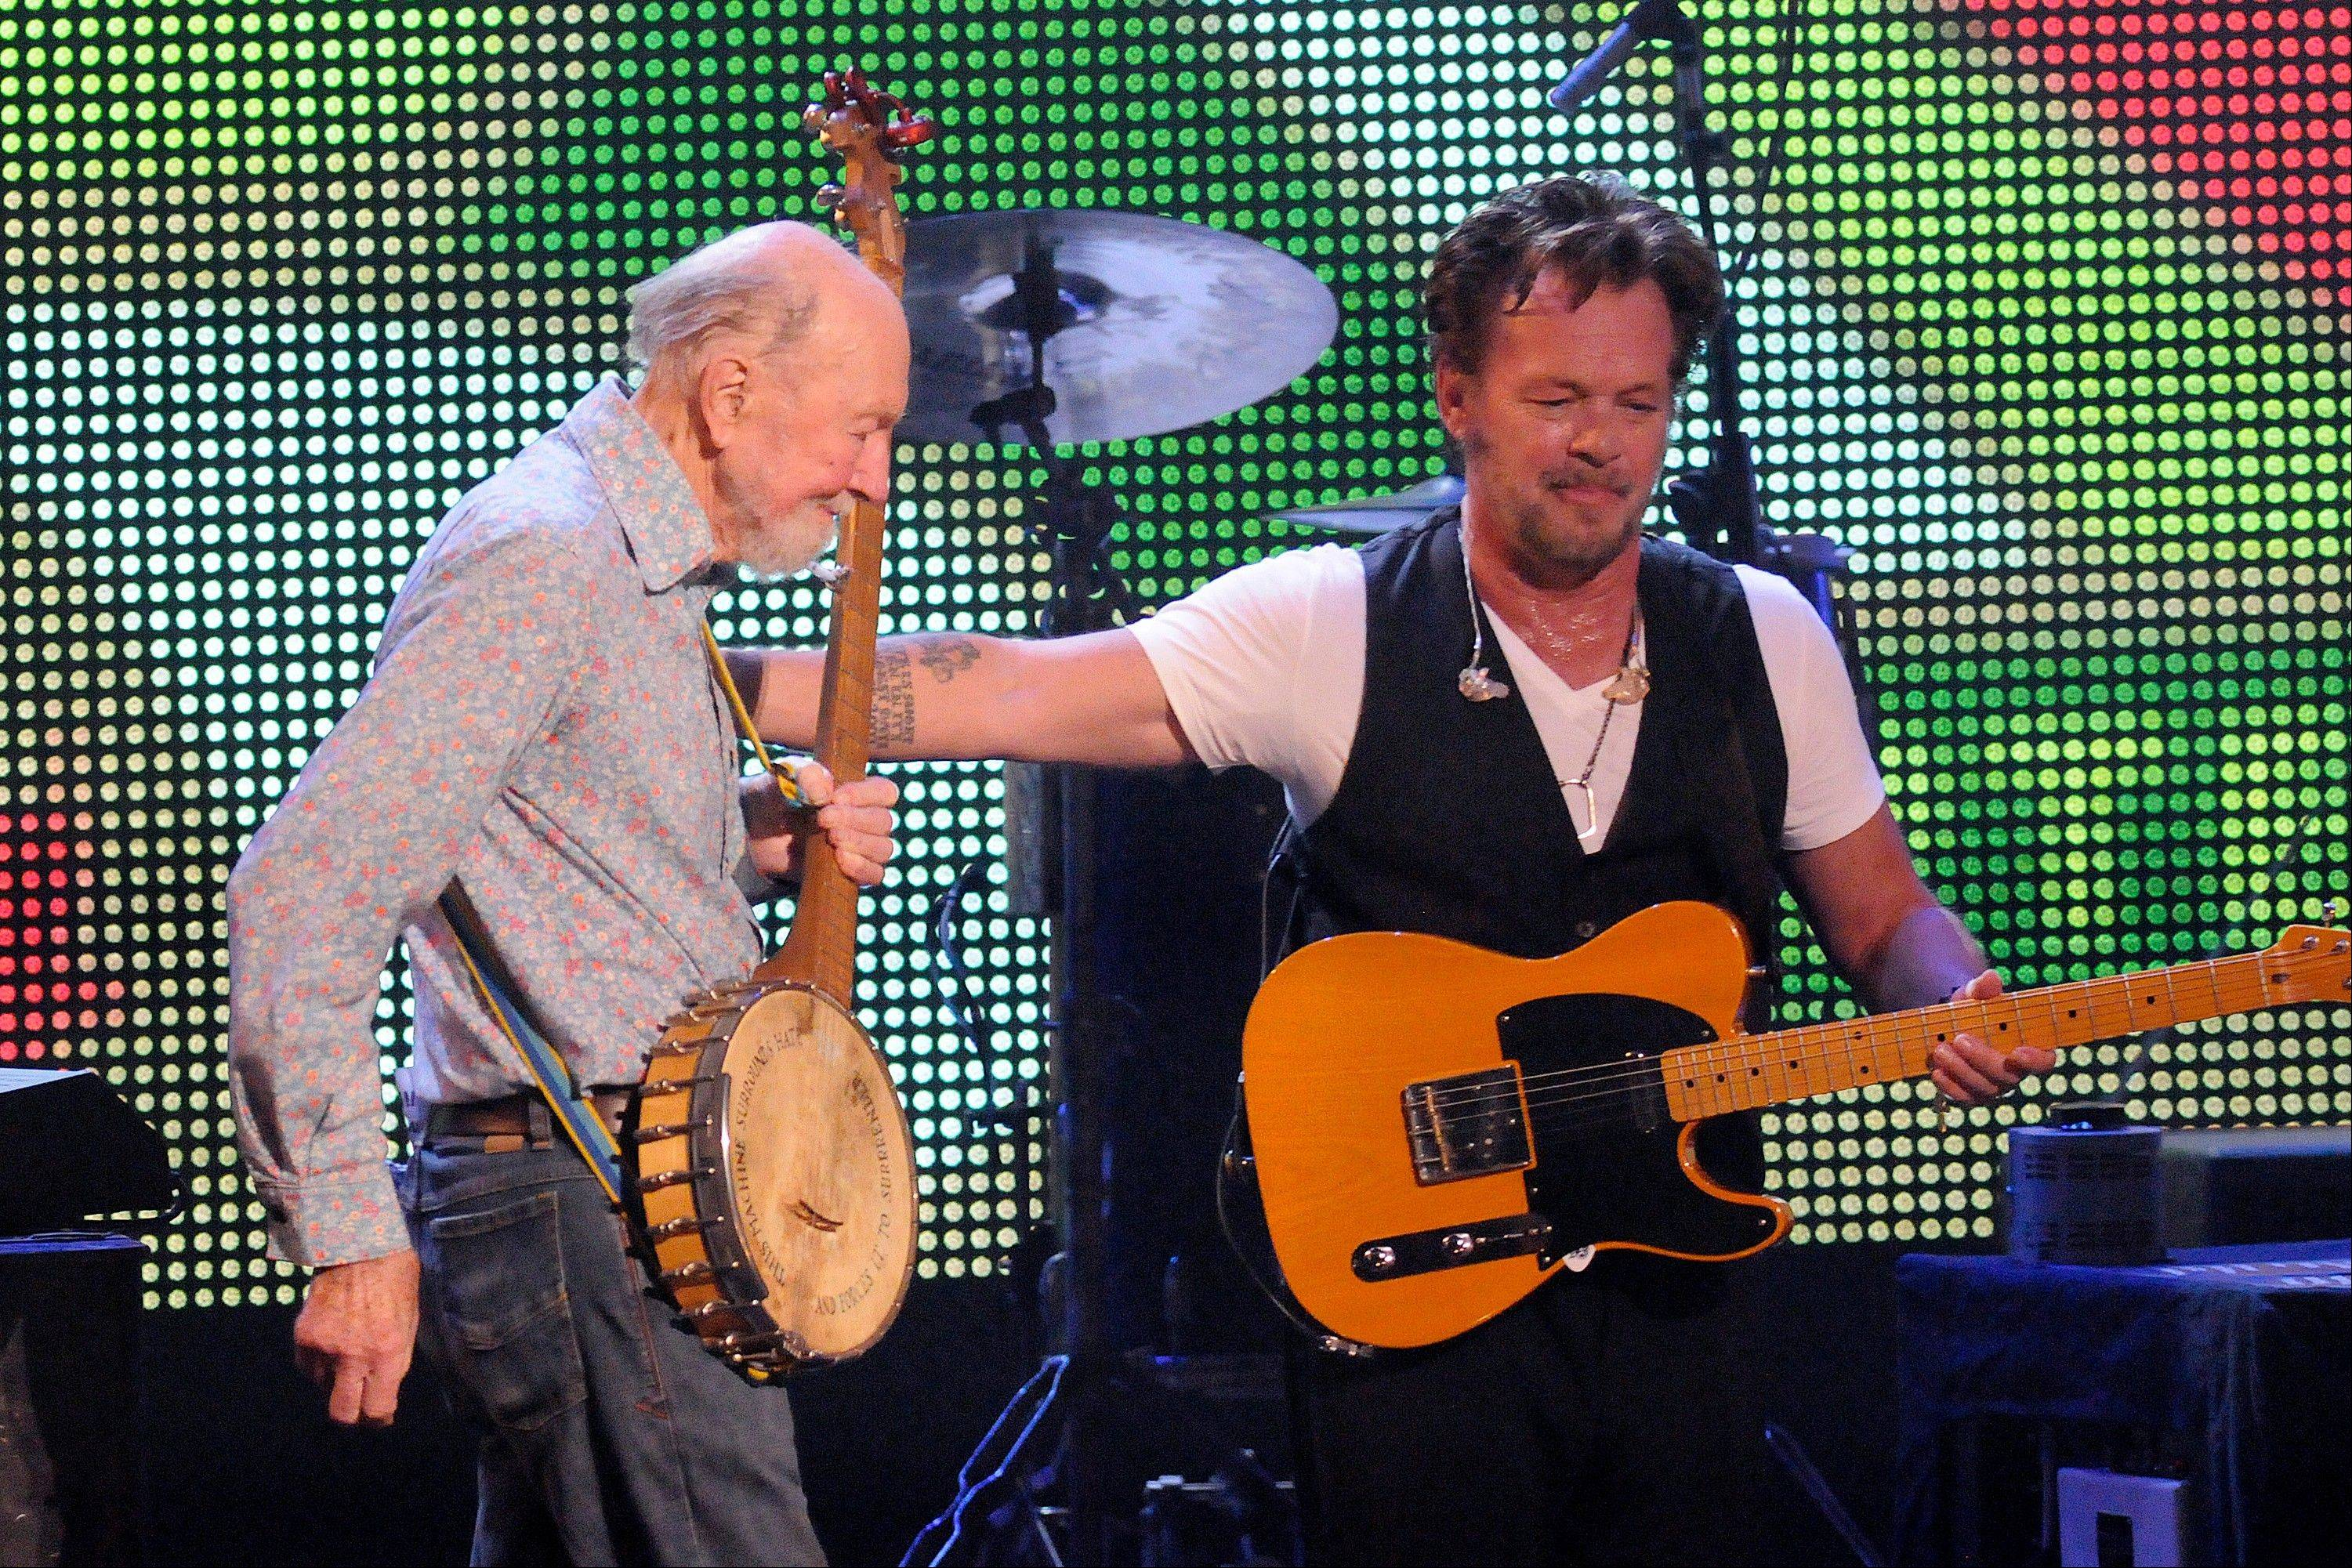 Pete Seeger, left, is welcomed on stage by John Mellencamp during the Farm Aid 2013 concert at Saratoga Performing Arts Center in Saratoga Springs, N.Y.